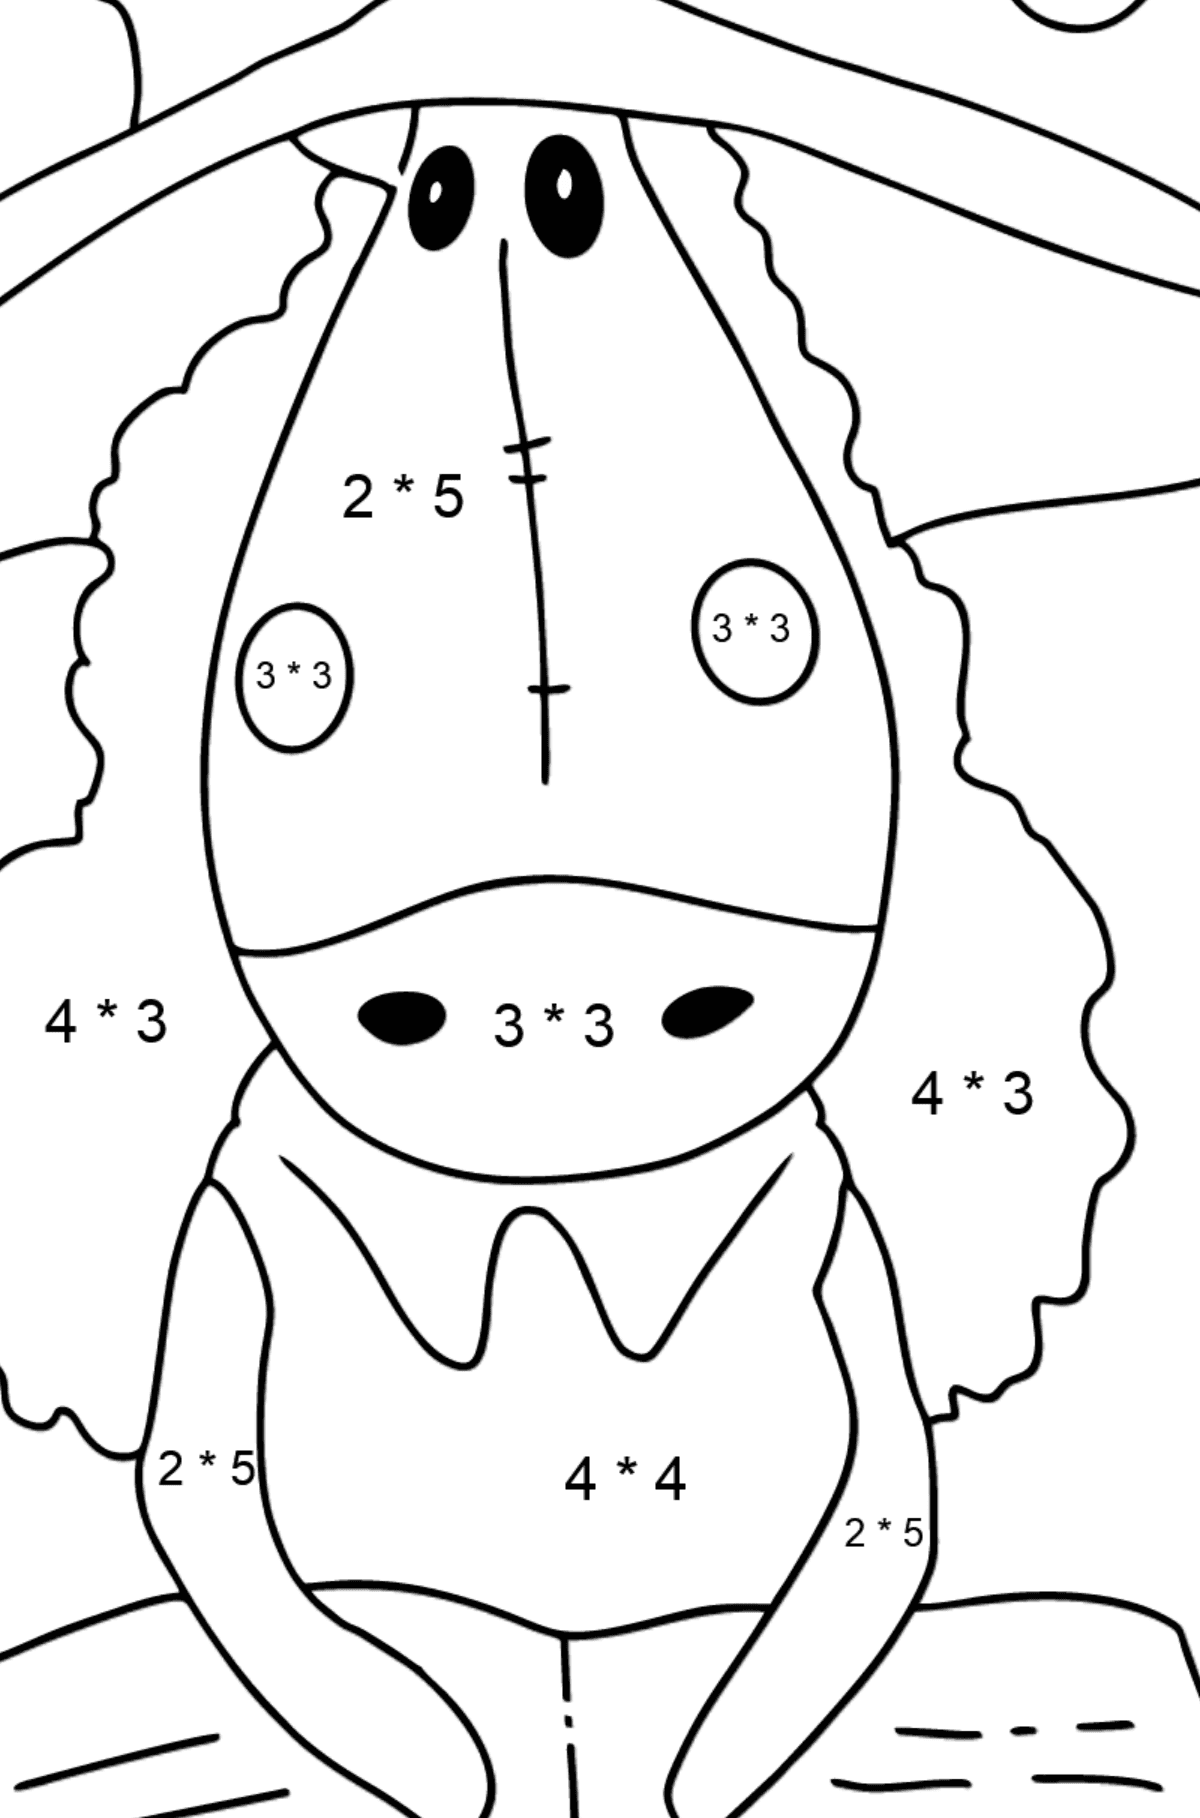 Simple coloring page a horse with book - Math Coloring - Multiplication for Kids